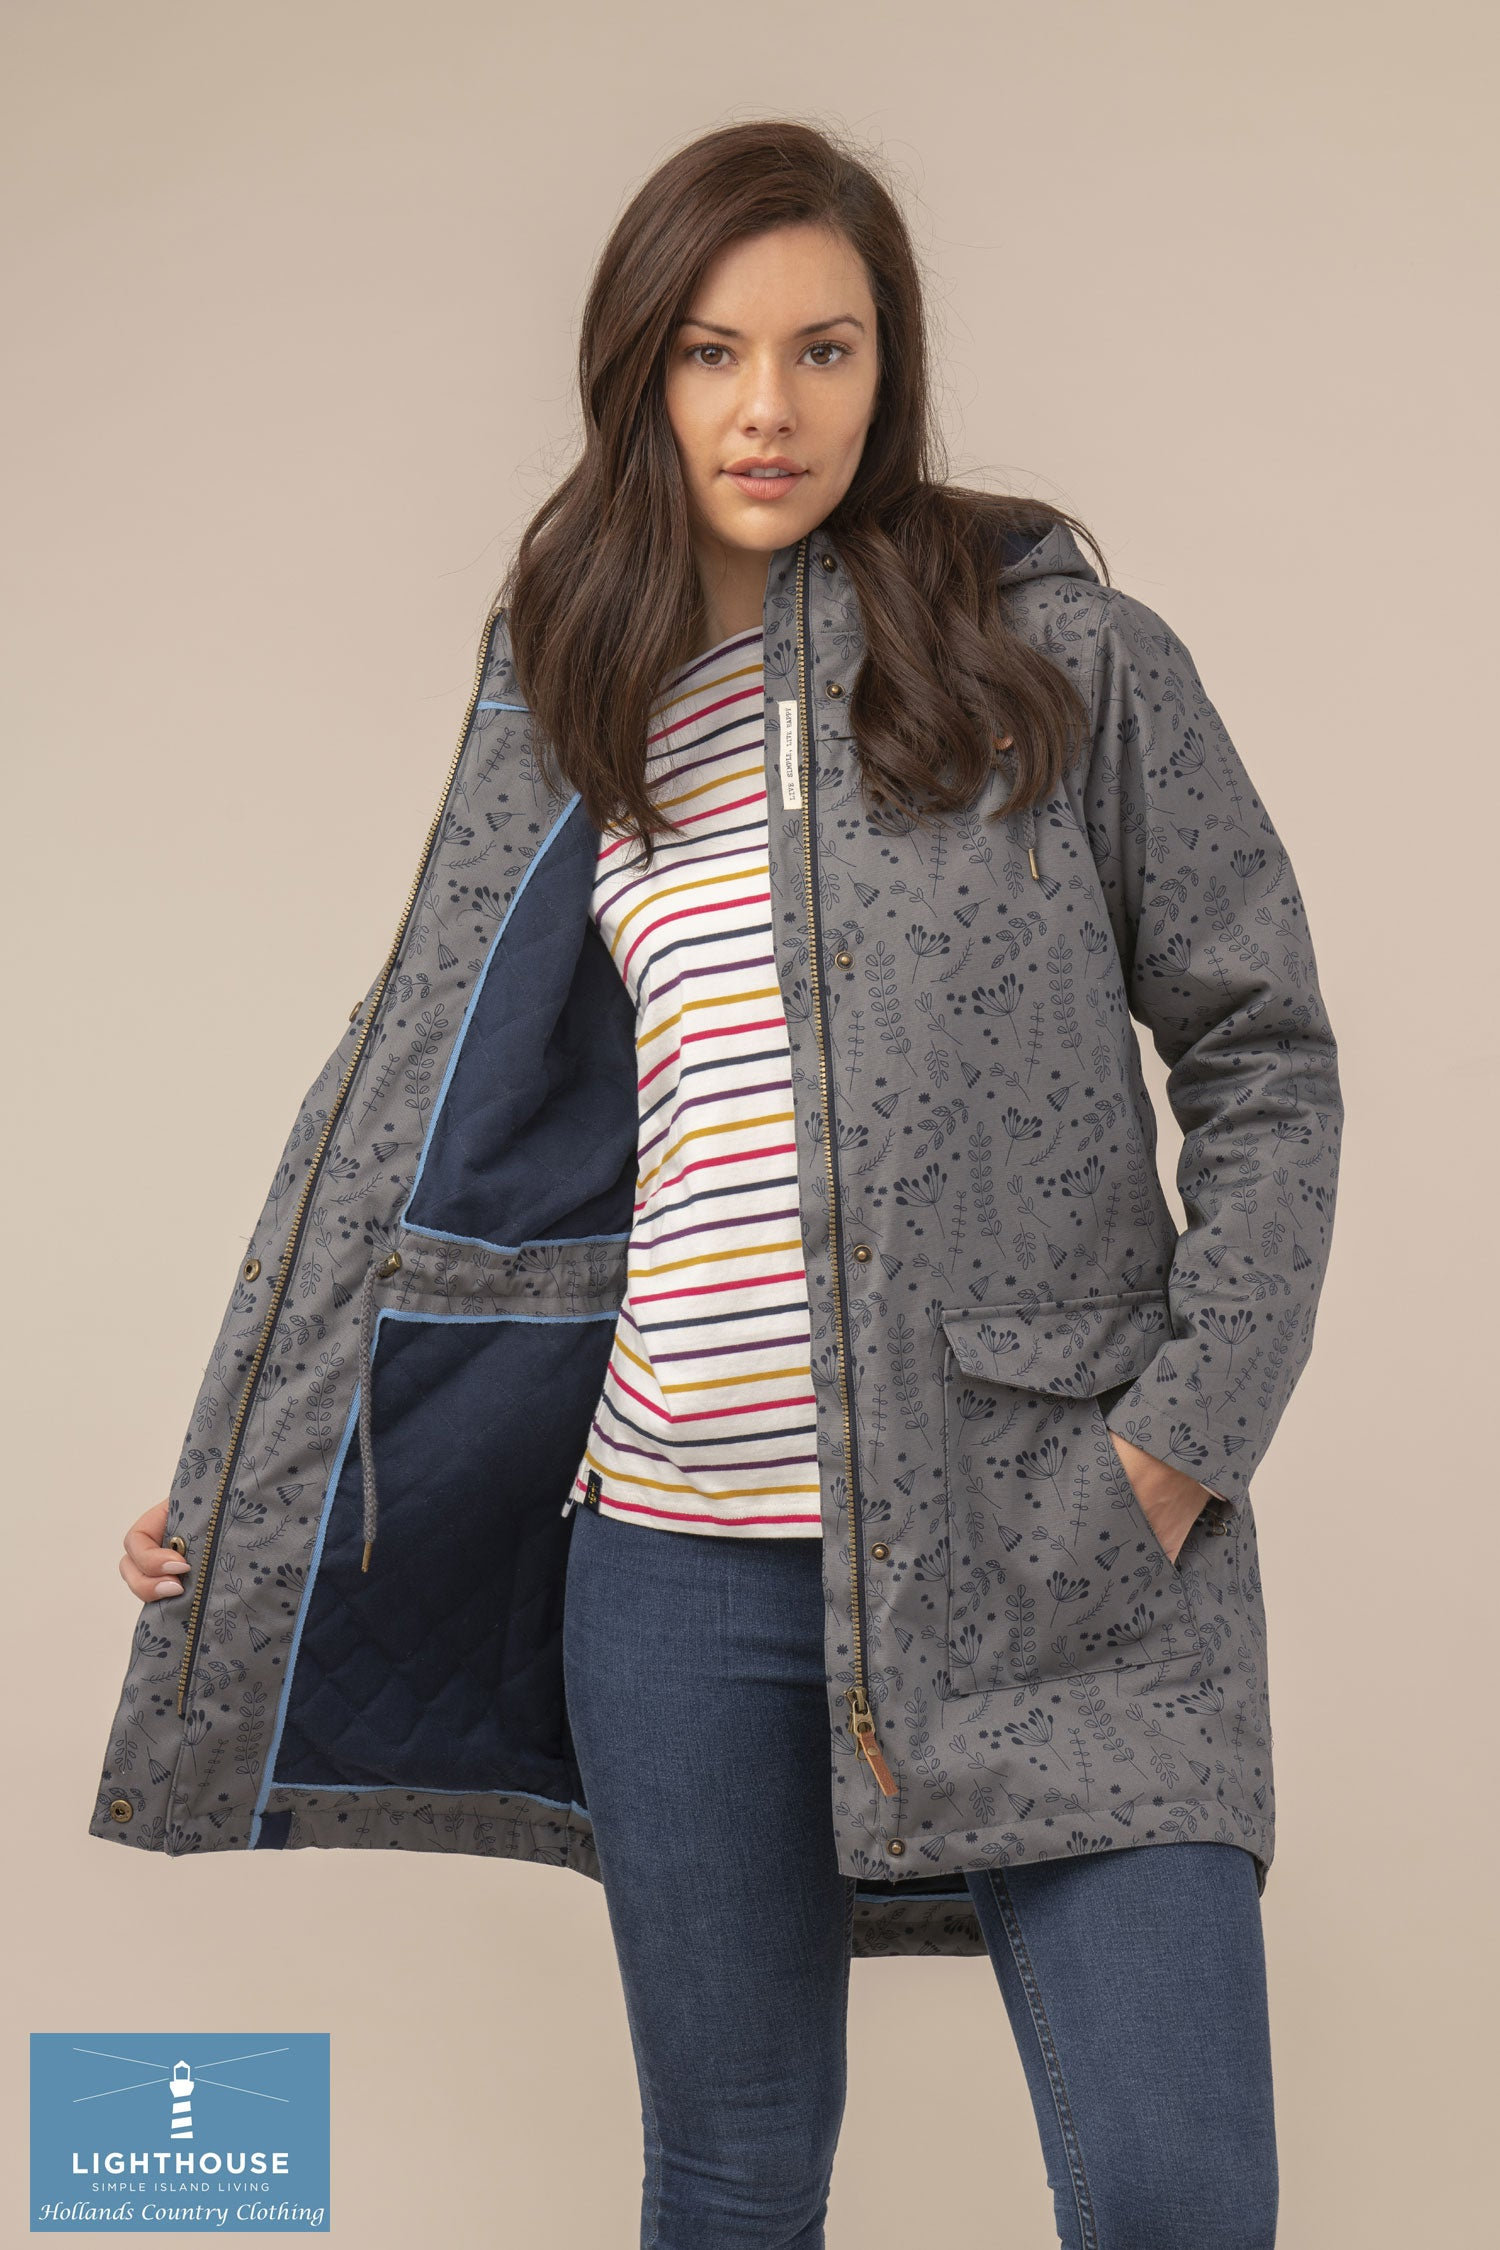 Coat open showing lining